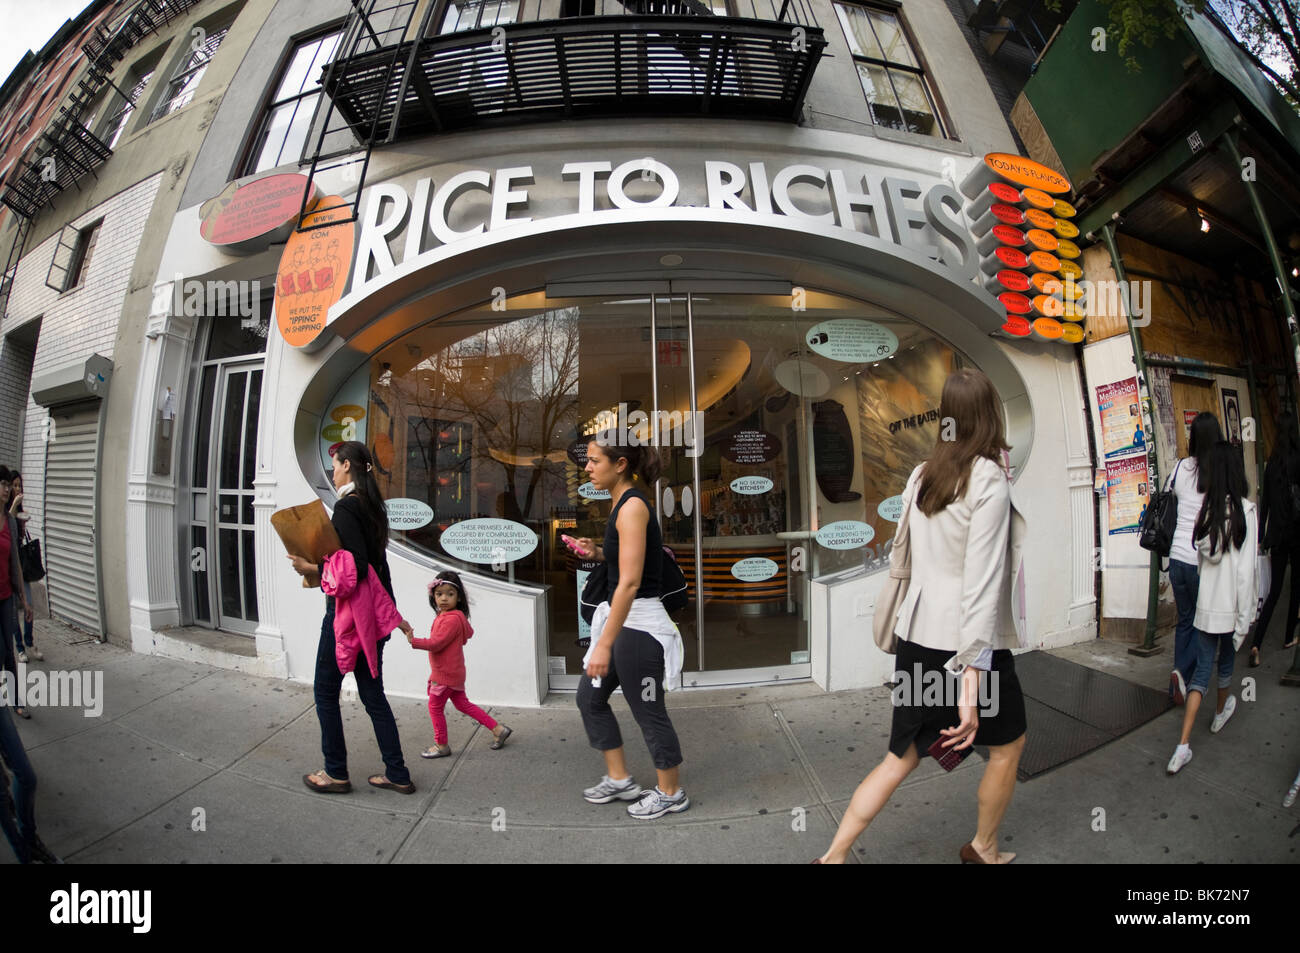 The Rice to Riches restaurant seen in the New York neighborhood of Soho - Stock Image